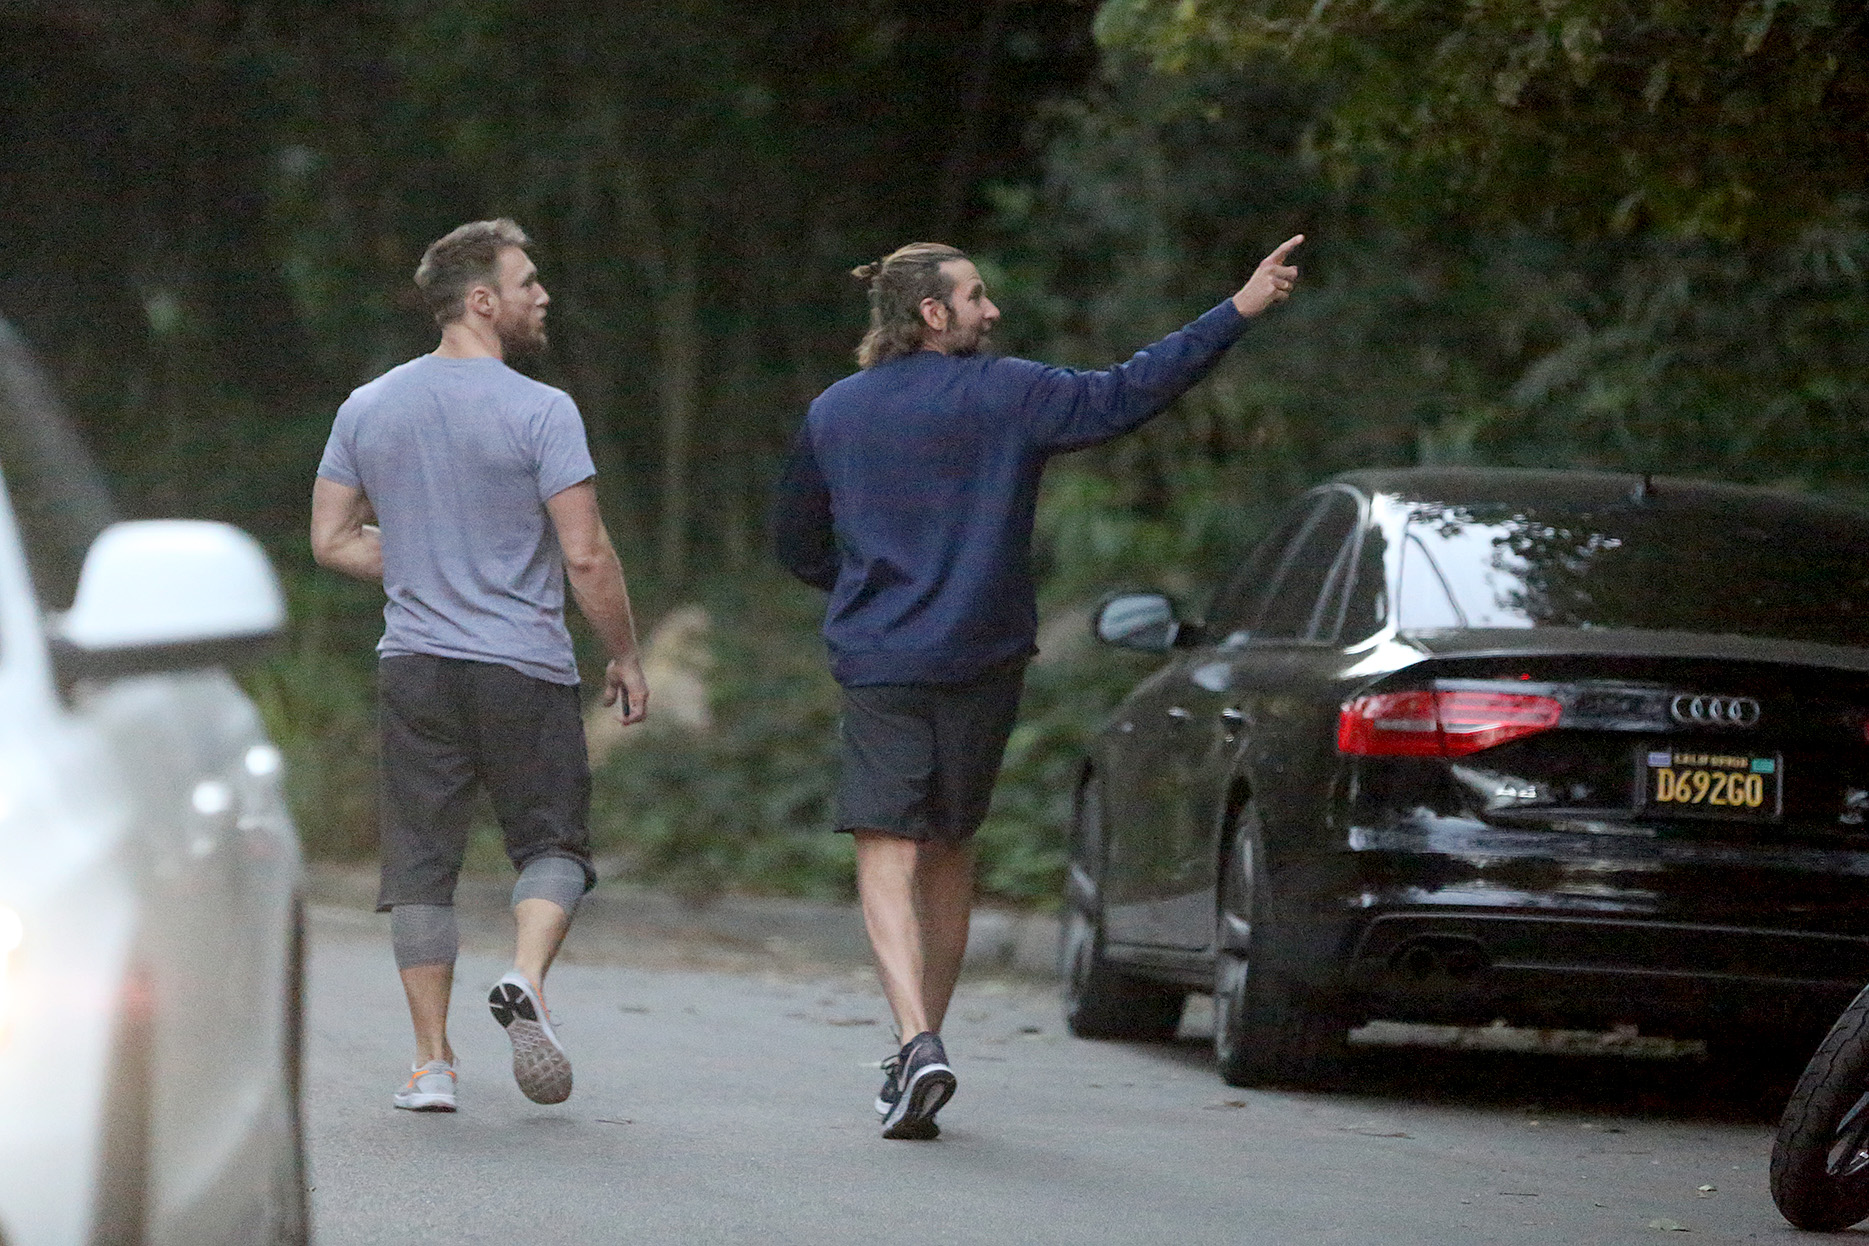 EXCLUSIVE: Bradley Cooper gets in shape for fatherhood as he goes for a run near his home in Los Angeles.